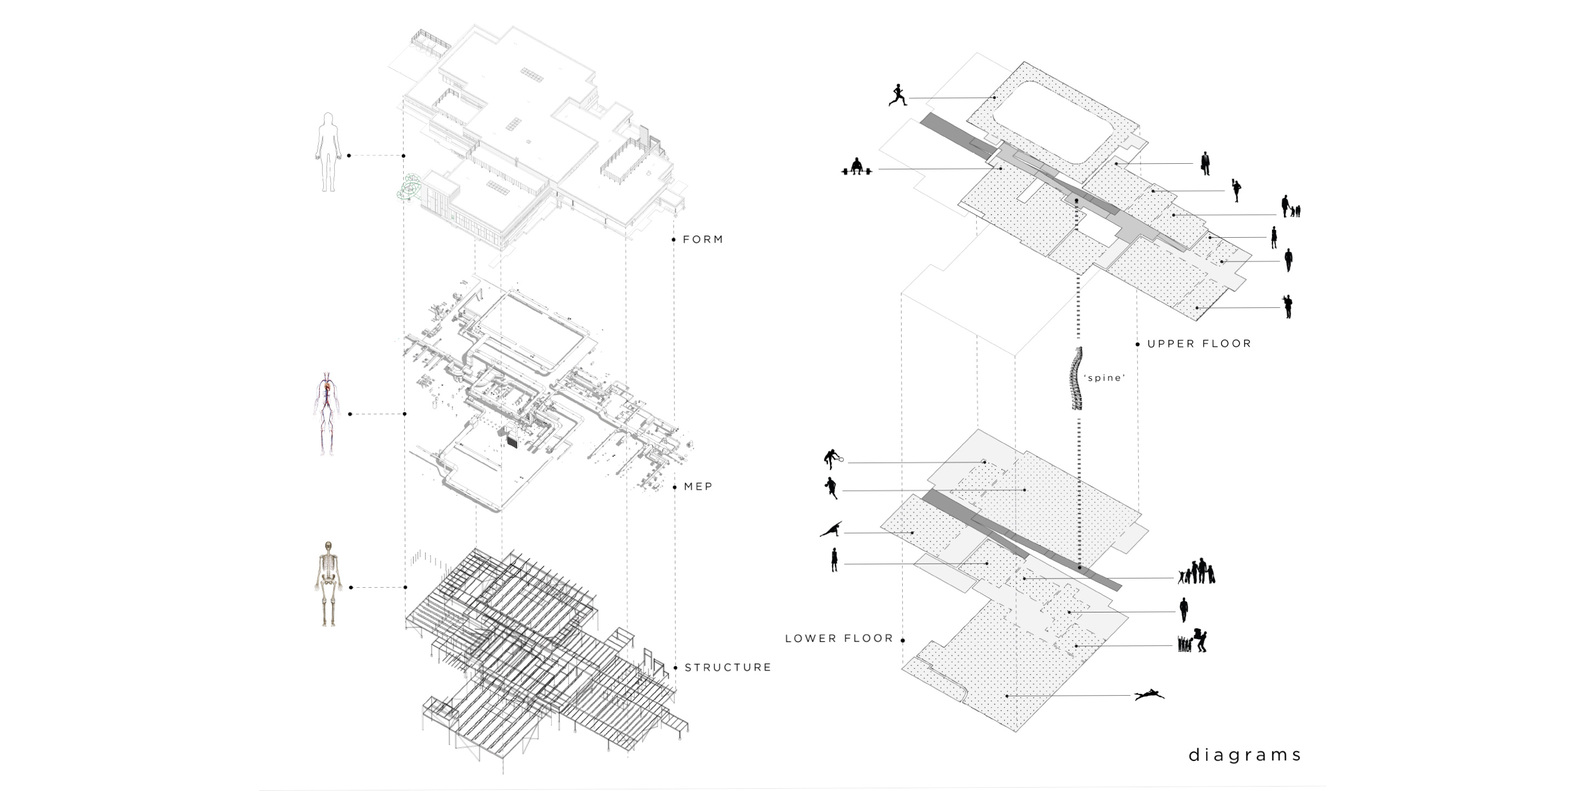 gallery of excelsior springs community center sfs architecture 31 diagram of community center [ 1582 x 791 Pixel ]